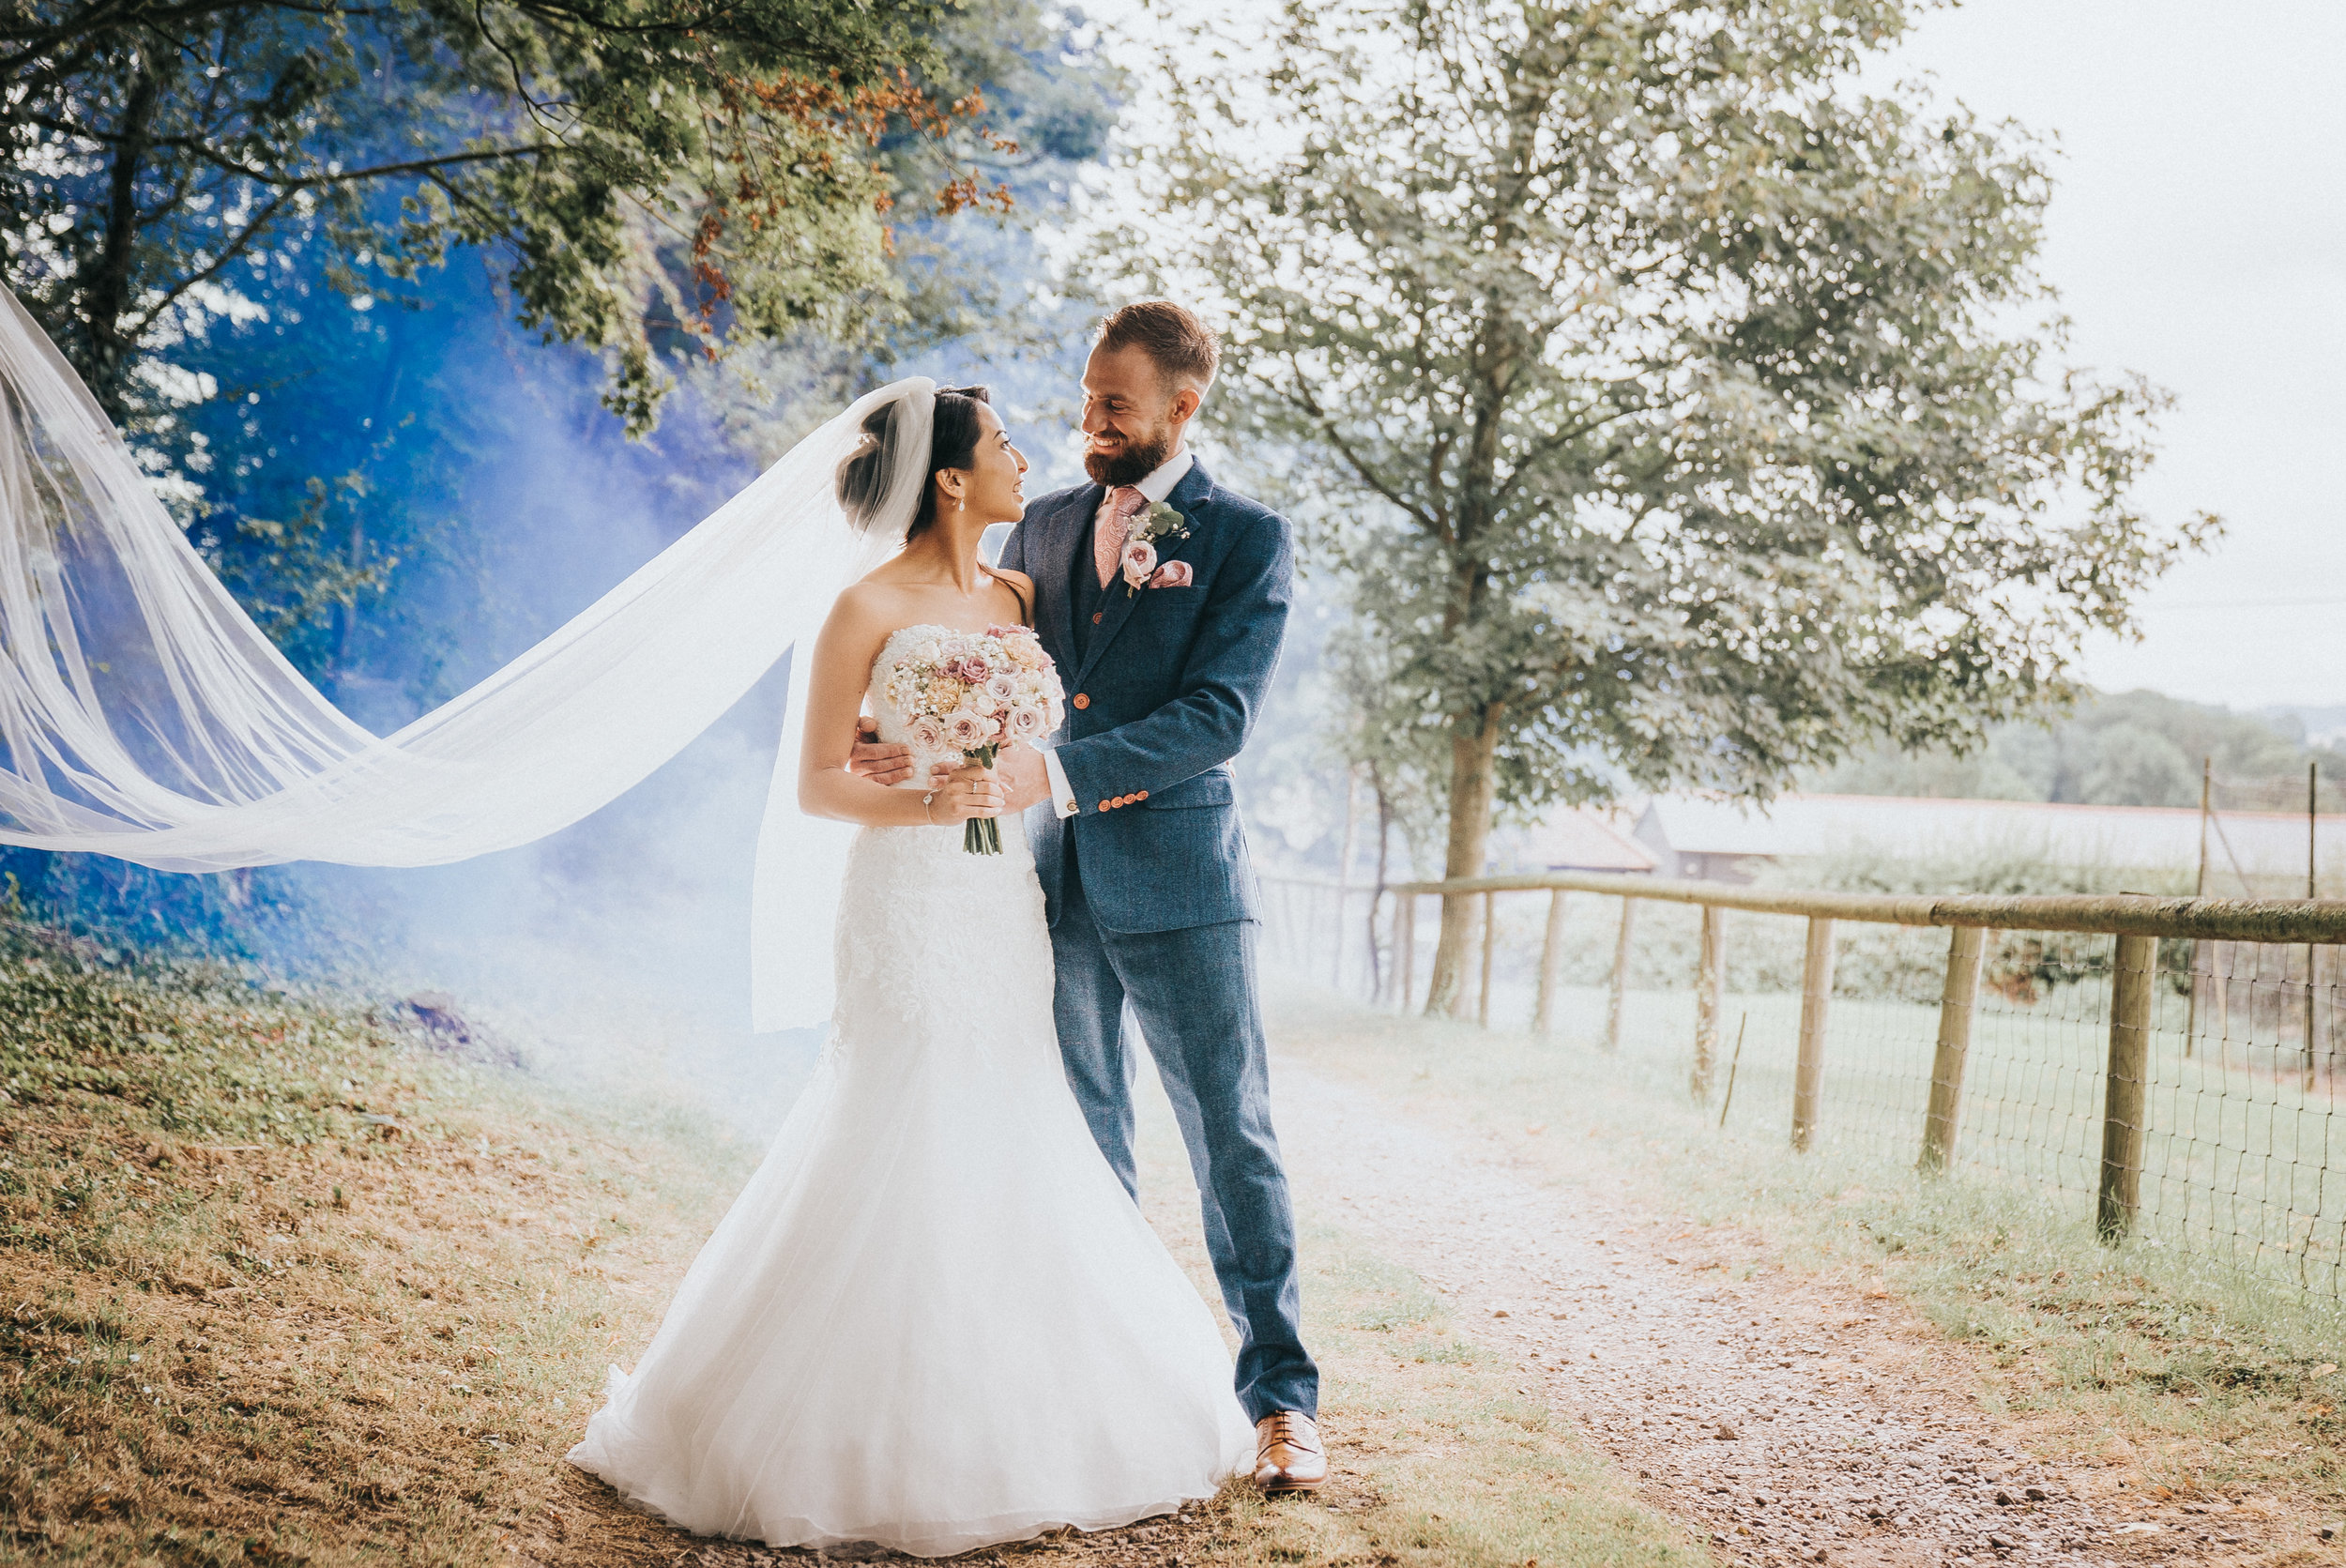 bedfordshire-london-wedding-photographer-videographer-47